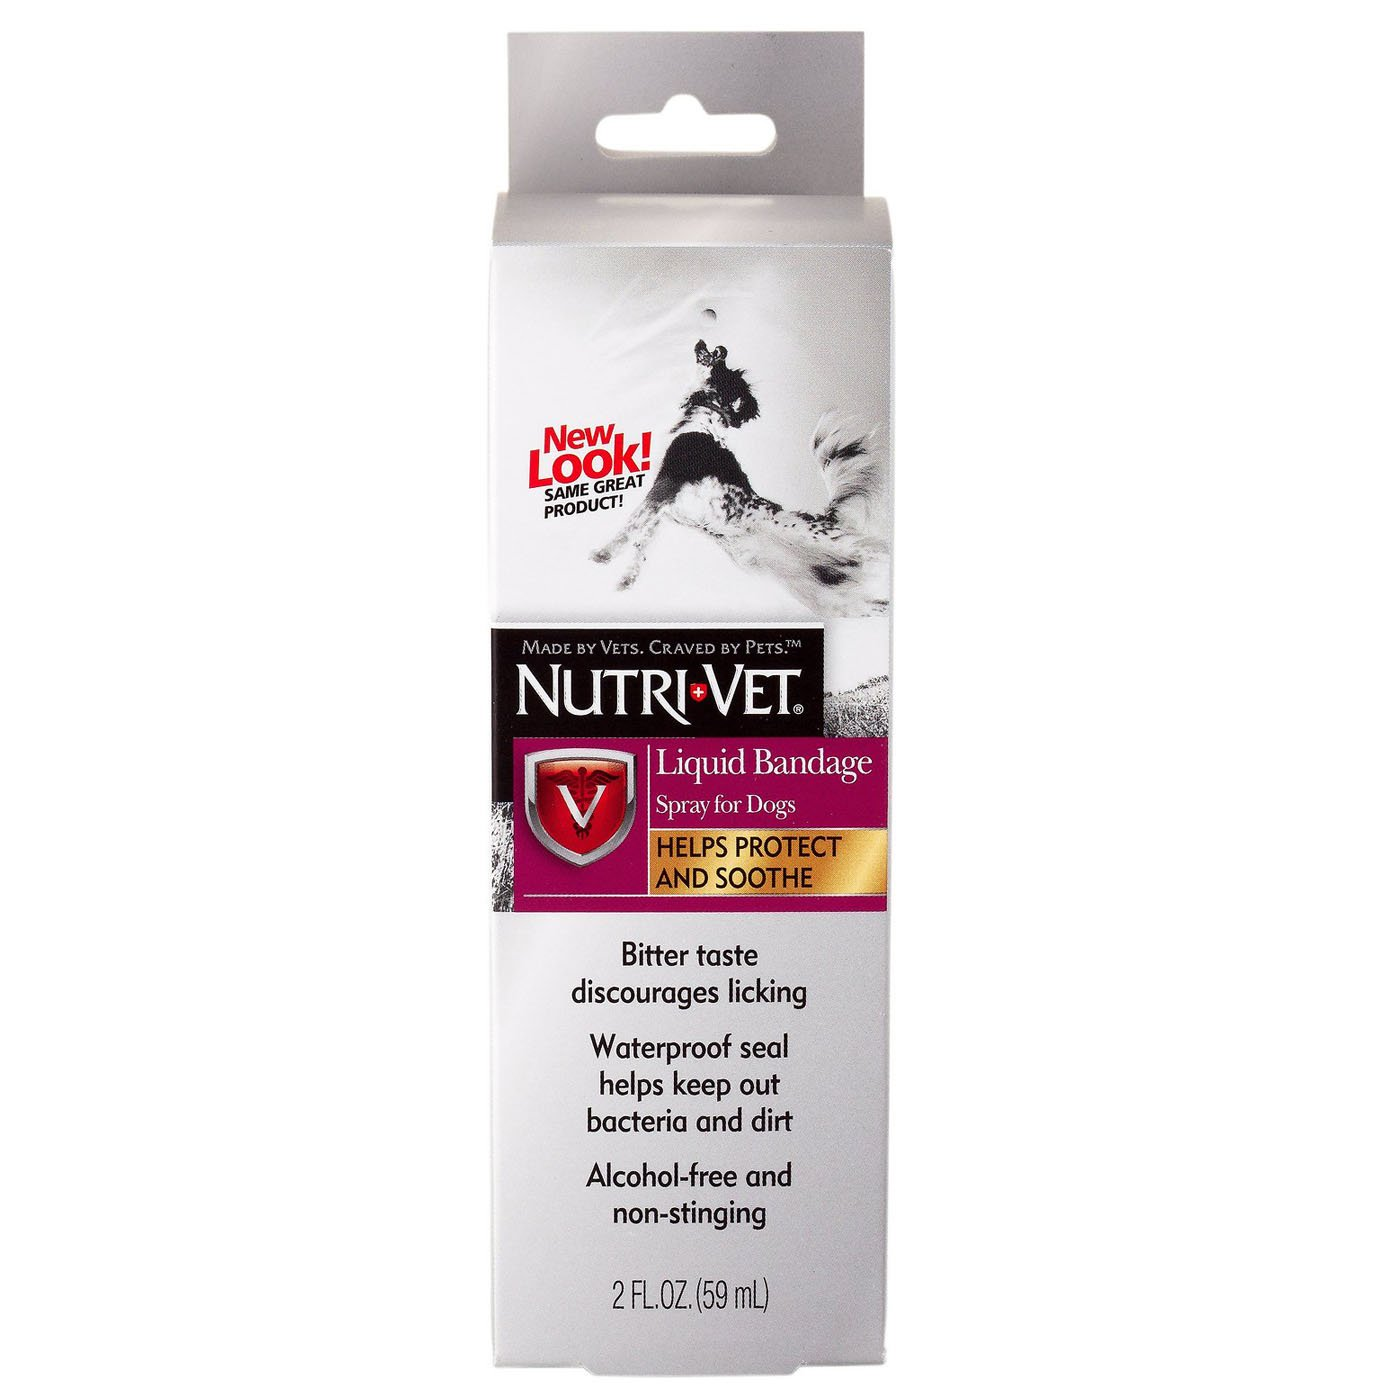 Nutri Vet Pet Liquid Bandage Dog Liquid Bandage Spray Alcohol Free Minor Wound Protection and Soothing Waterproof Seal 2 Oz